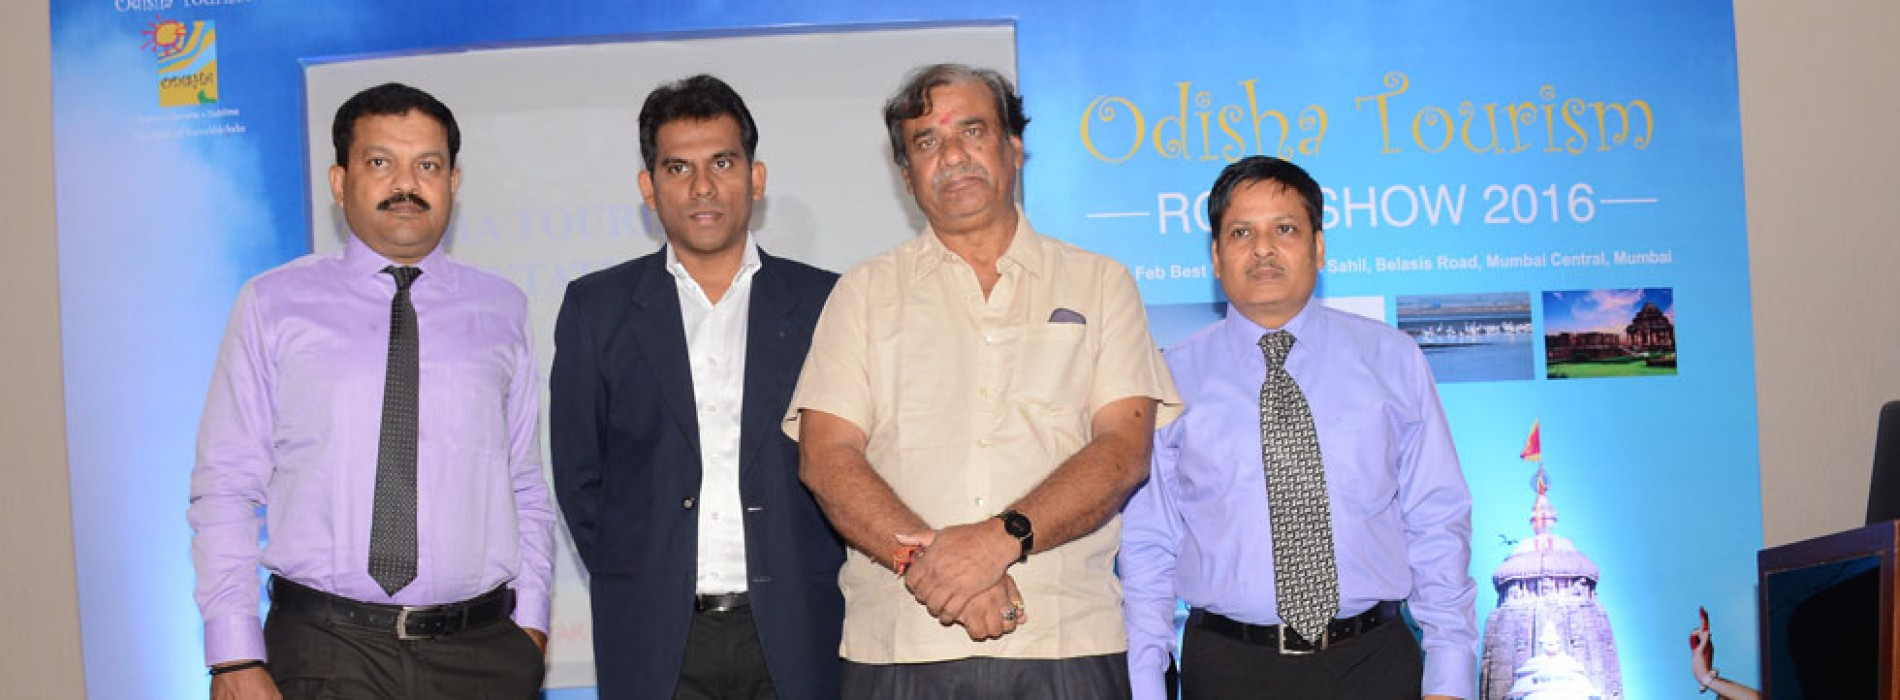 Odisha Tourism Road Show held at Mumbai to attract Domestic Tourists